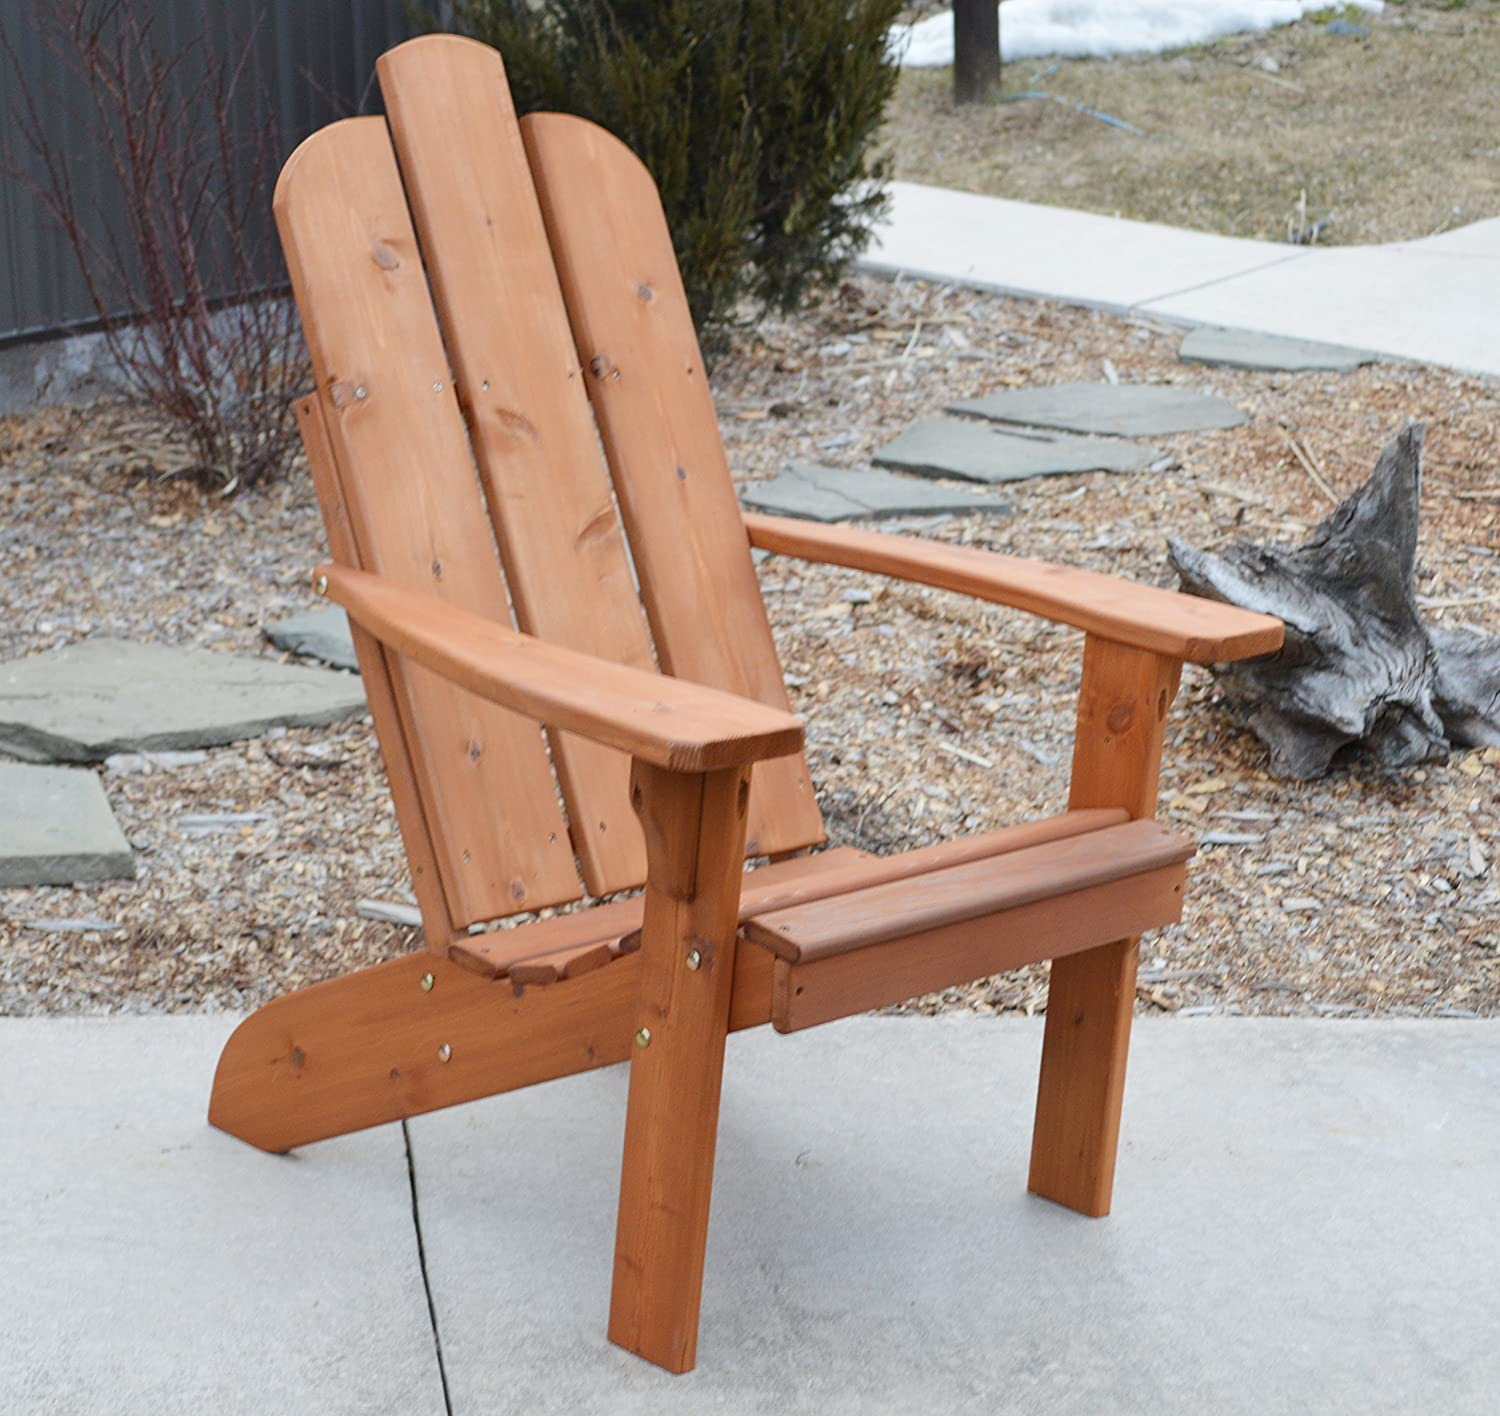 Cedar Wood Adirondack Chair, Amish Made Outdoor Chairs, Weather Resistant  Wooden Patio Deck and Porch Outside Furniture, Modern, Casual & Rustic  Style ...